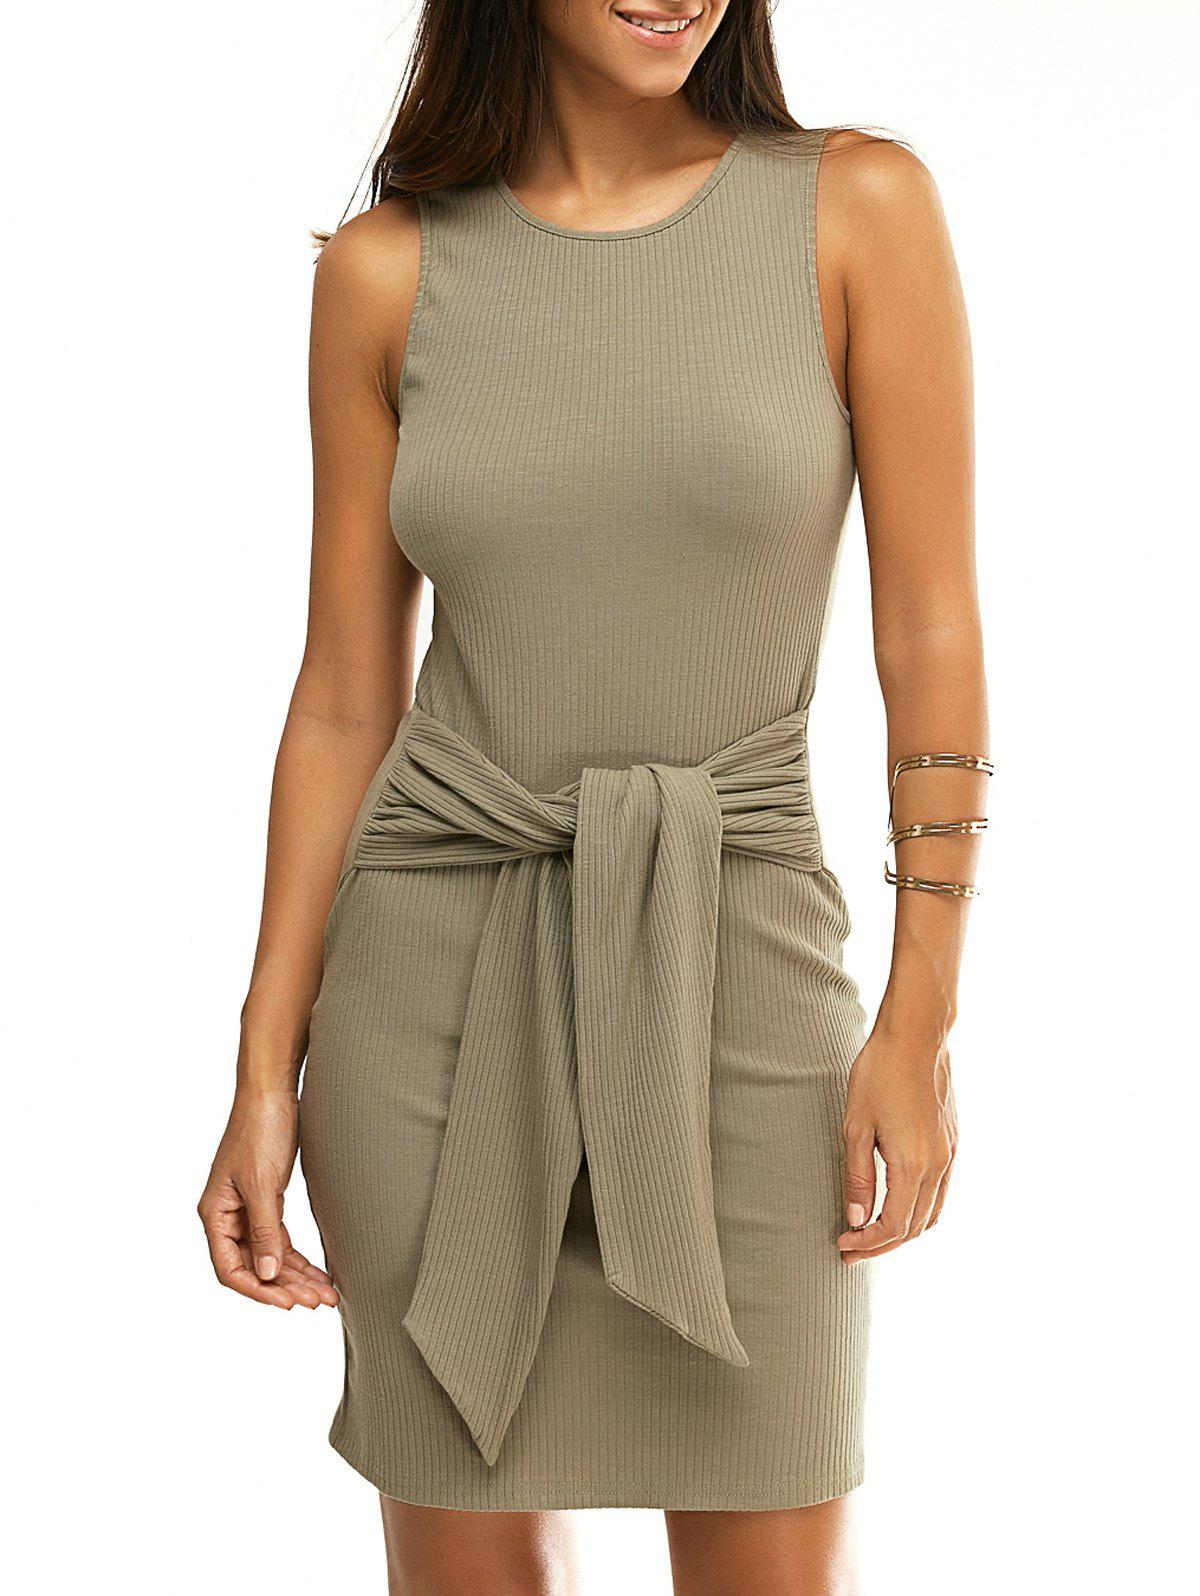 Online Fashionable Round Collar Sleeveless Knotted Pure Color Skinny Women's Dress